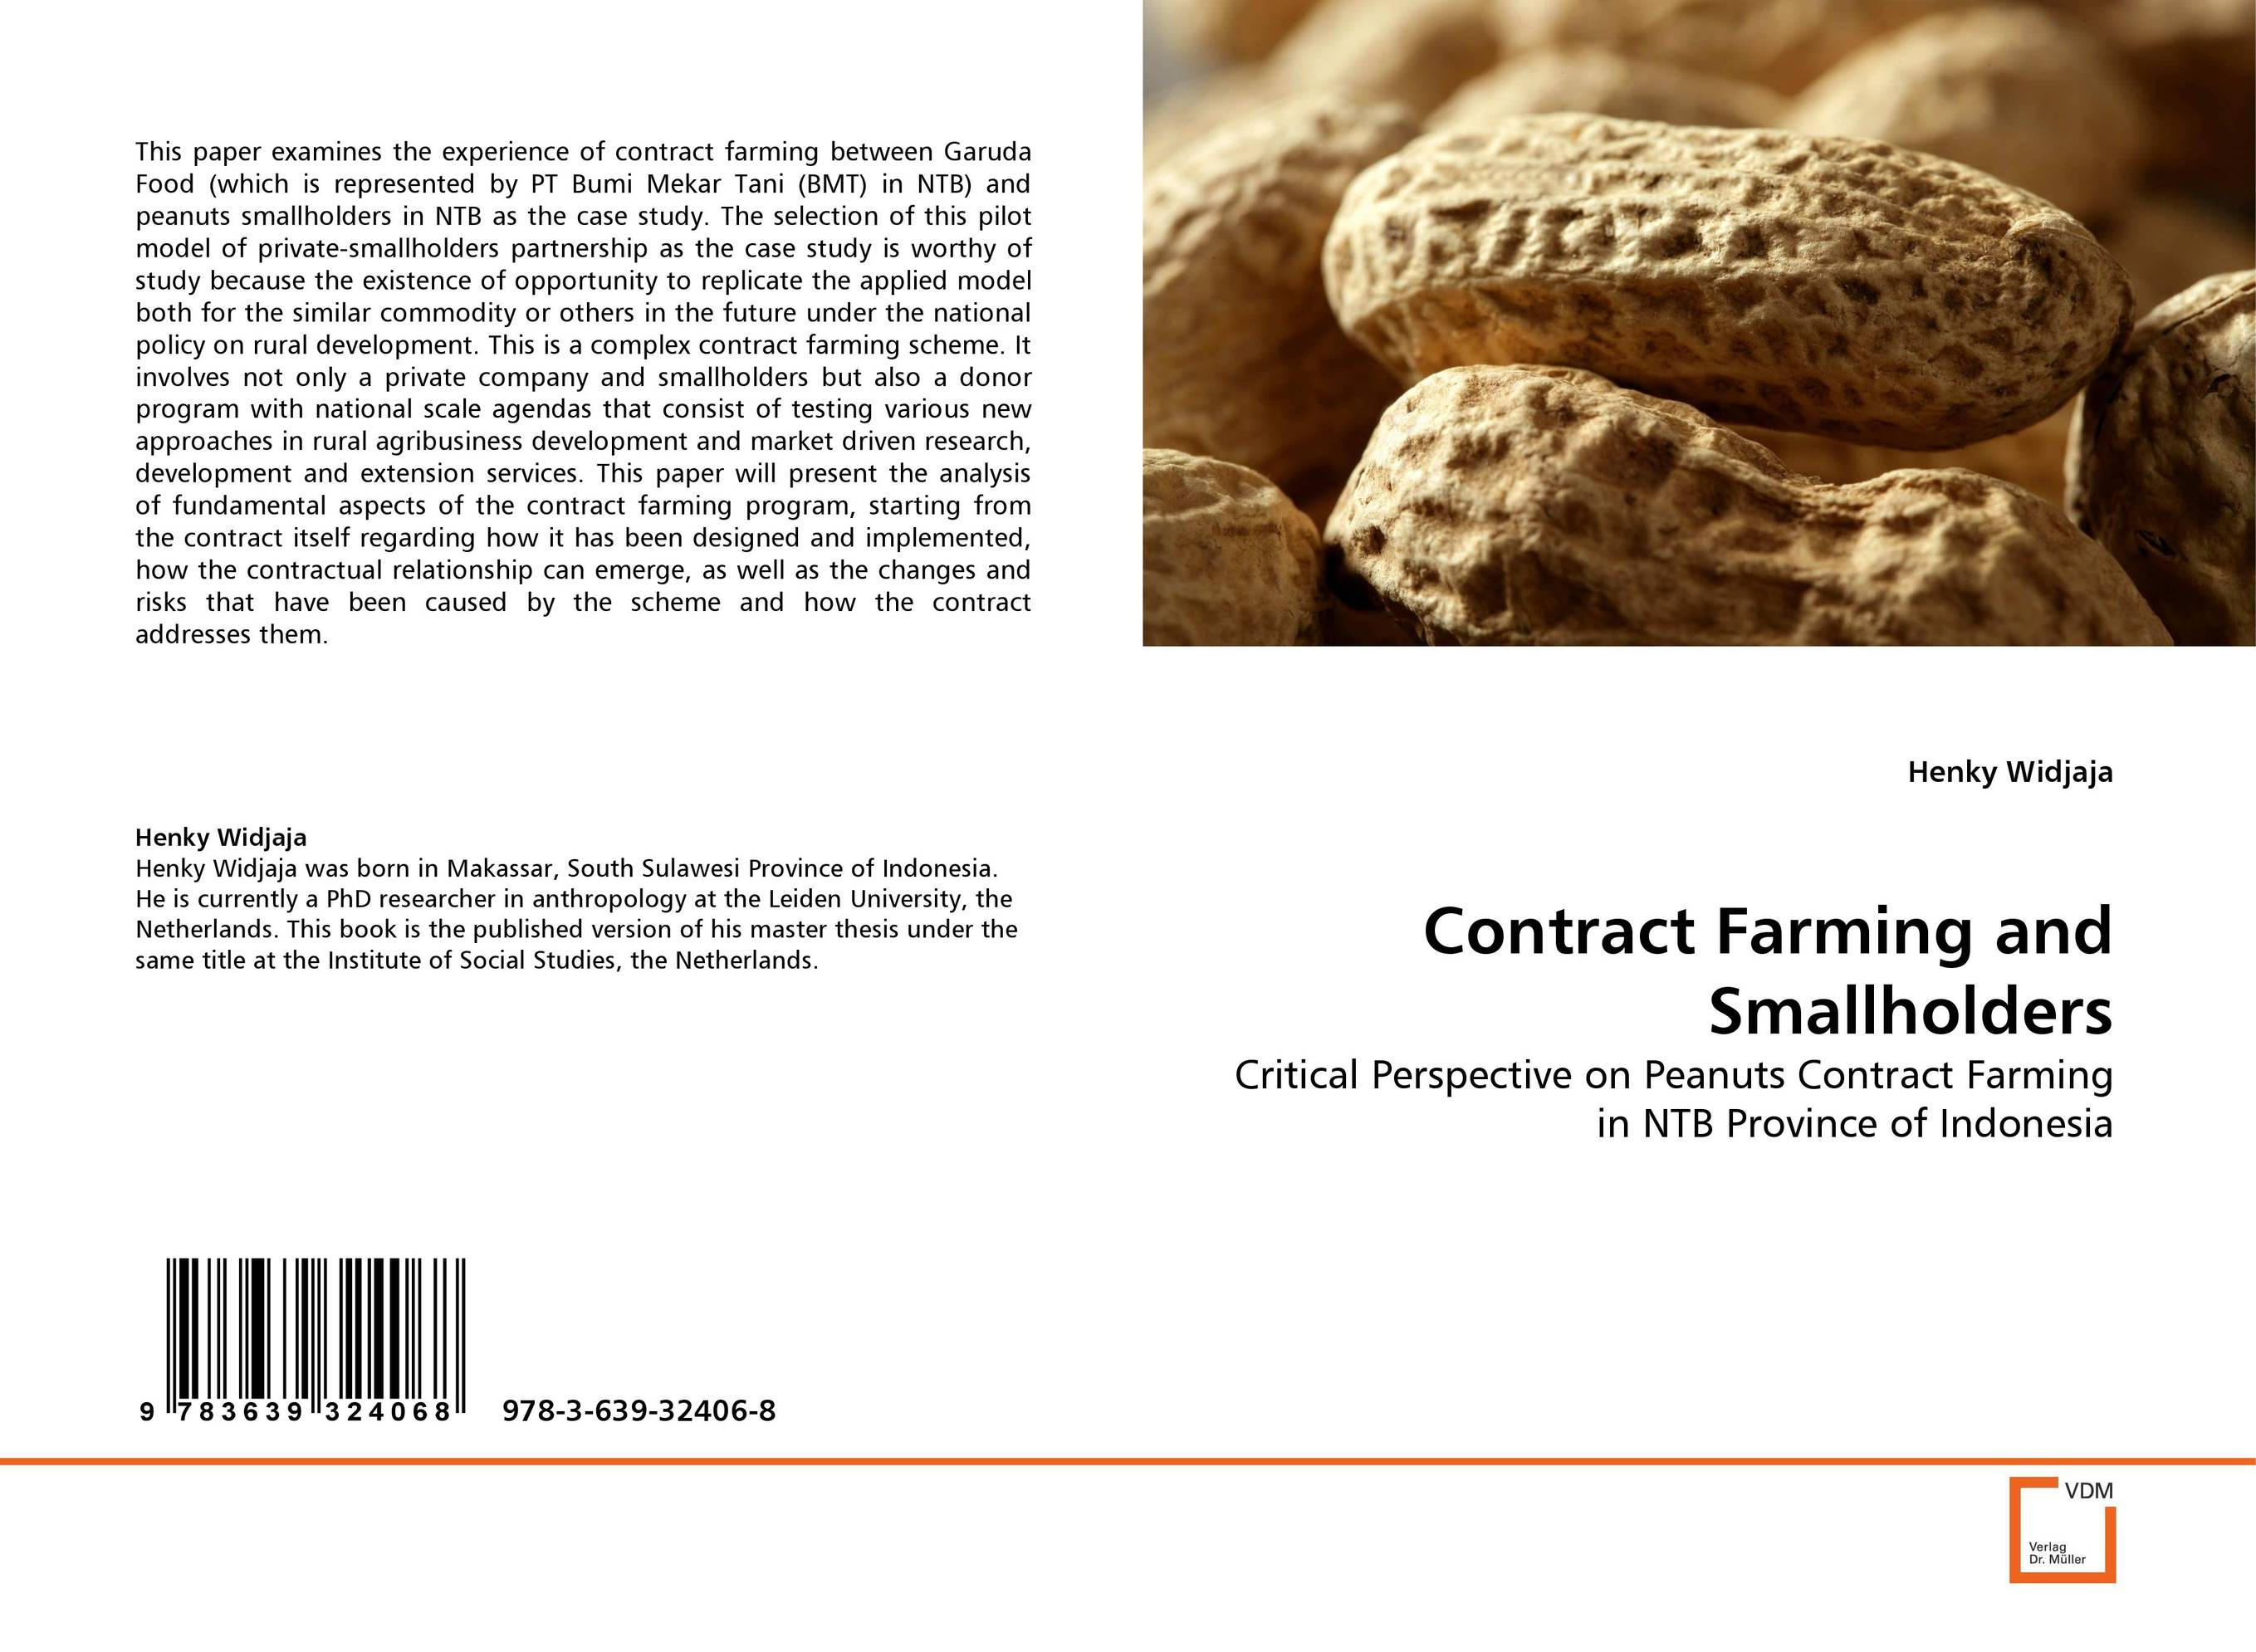 Contract Farming and Smallholders